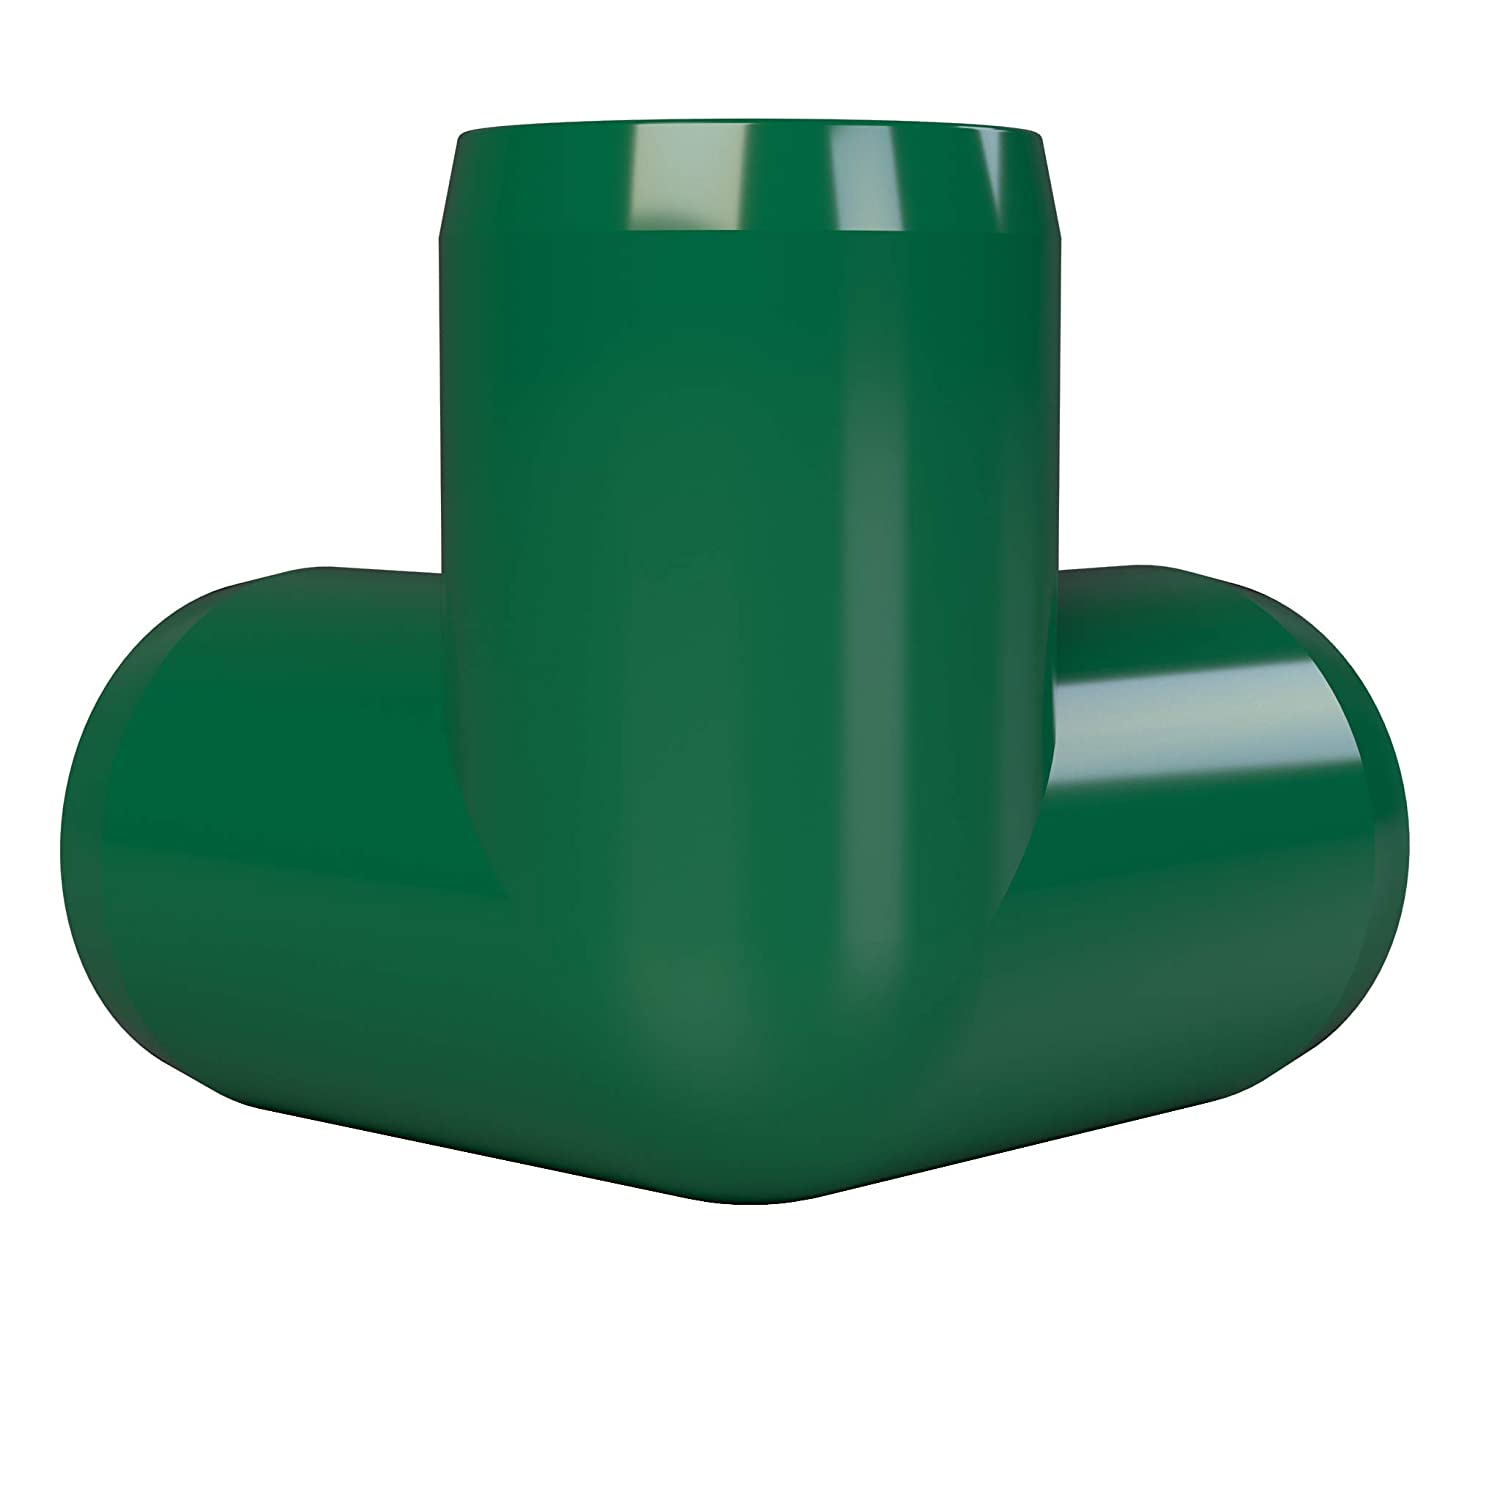 1//2 Size Pack of 10 Green Furniture Grade FORMUFIT F0123WE-GR-10 3-Way Elbow PVC Fitting